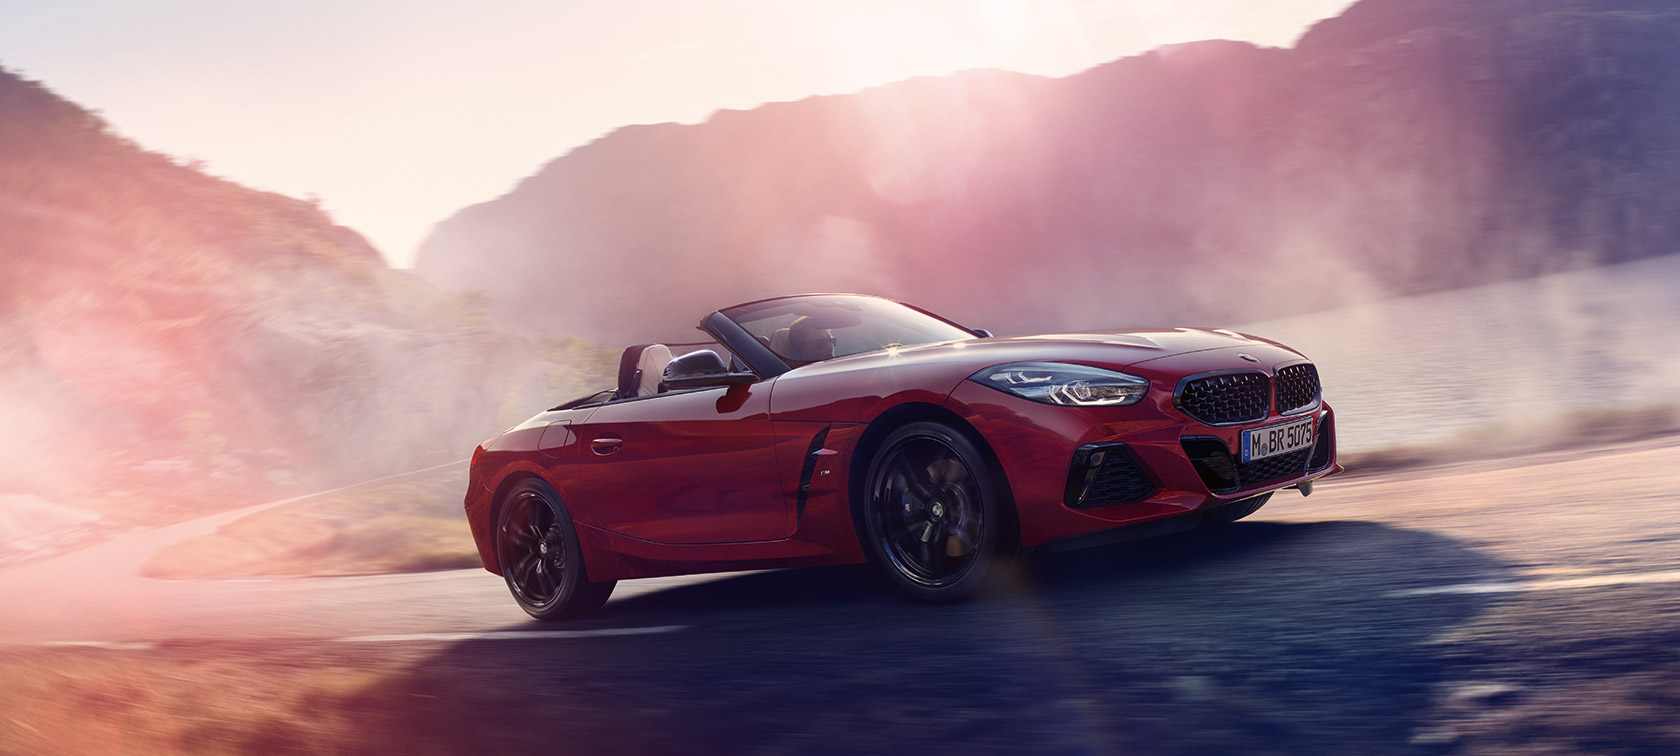 Bmw Z4 Roadster Inspire New Vehicles Bmw Uk